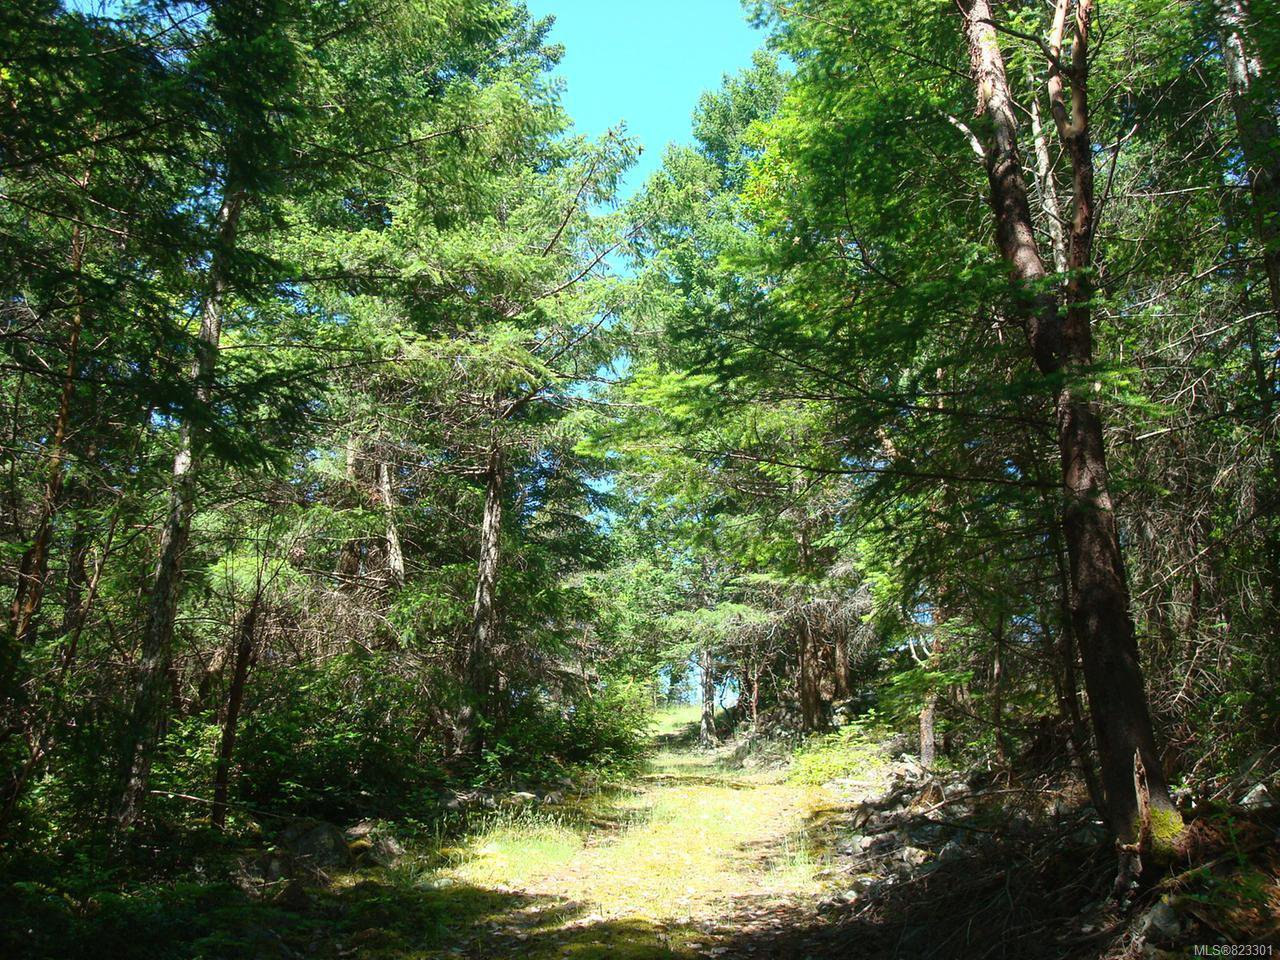 Photo 3: Photos: SEC 27 Oben Rd in LASQUETI ISLAND: Isl Lasqueti Island House for sale (Islands)  : MLS®# 823301